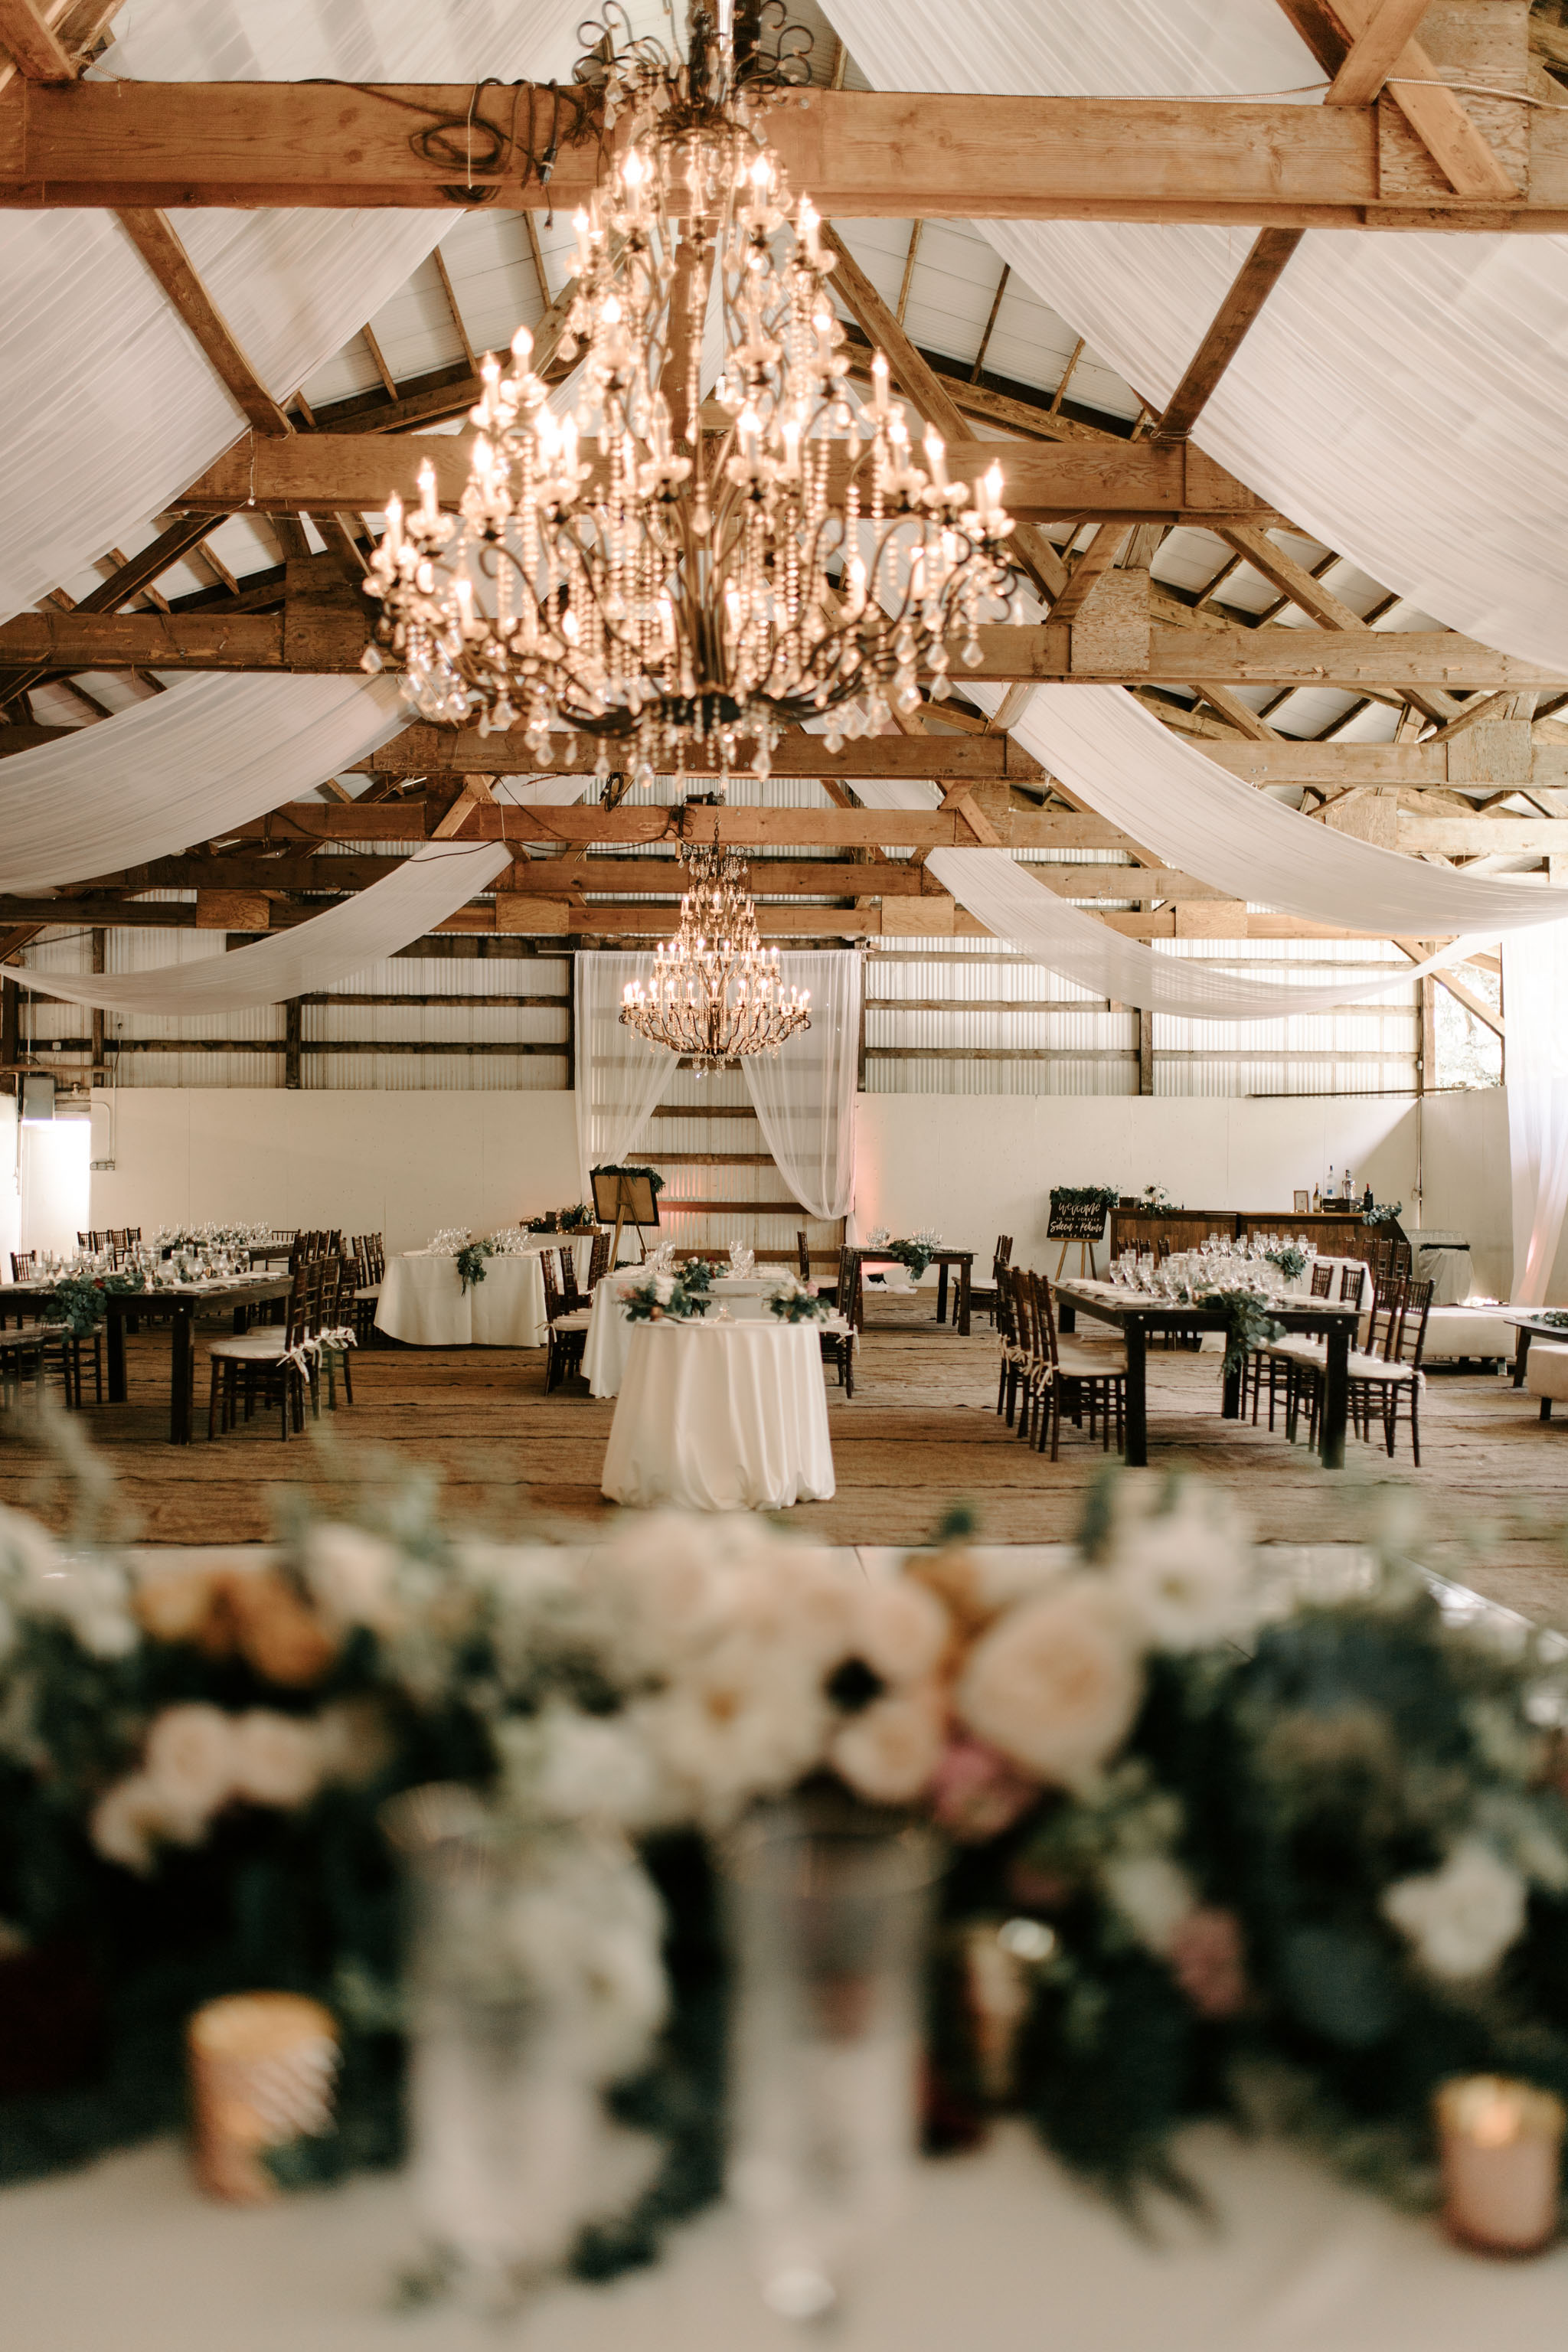 Hawaii Barn Wedding Reception - Sunset Ranch Hawaii Wedding By Oahu Wedding Photographer Desiree Leilani